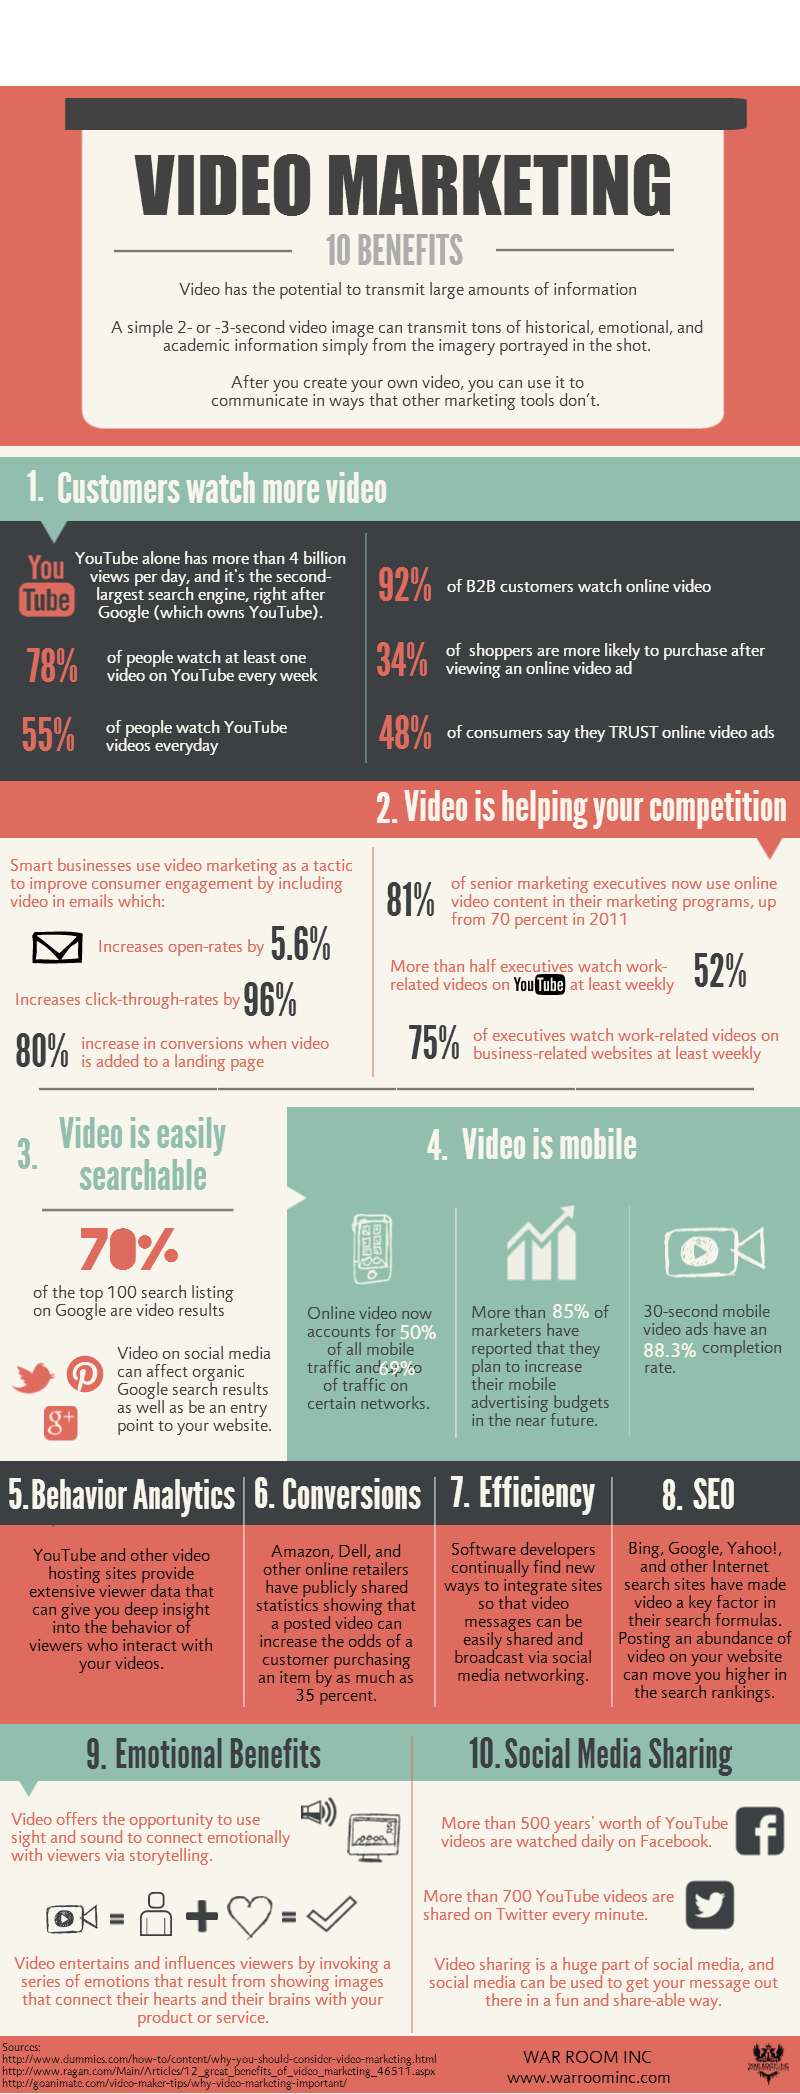 benefits-video-marketing.png